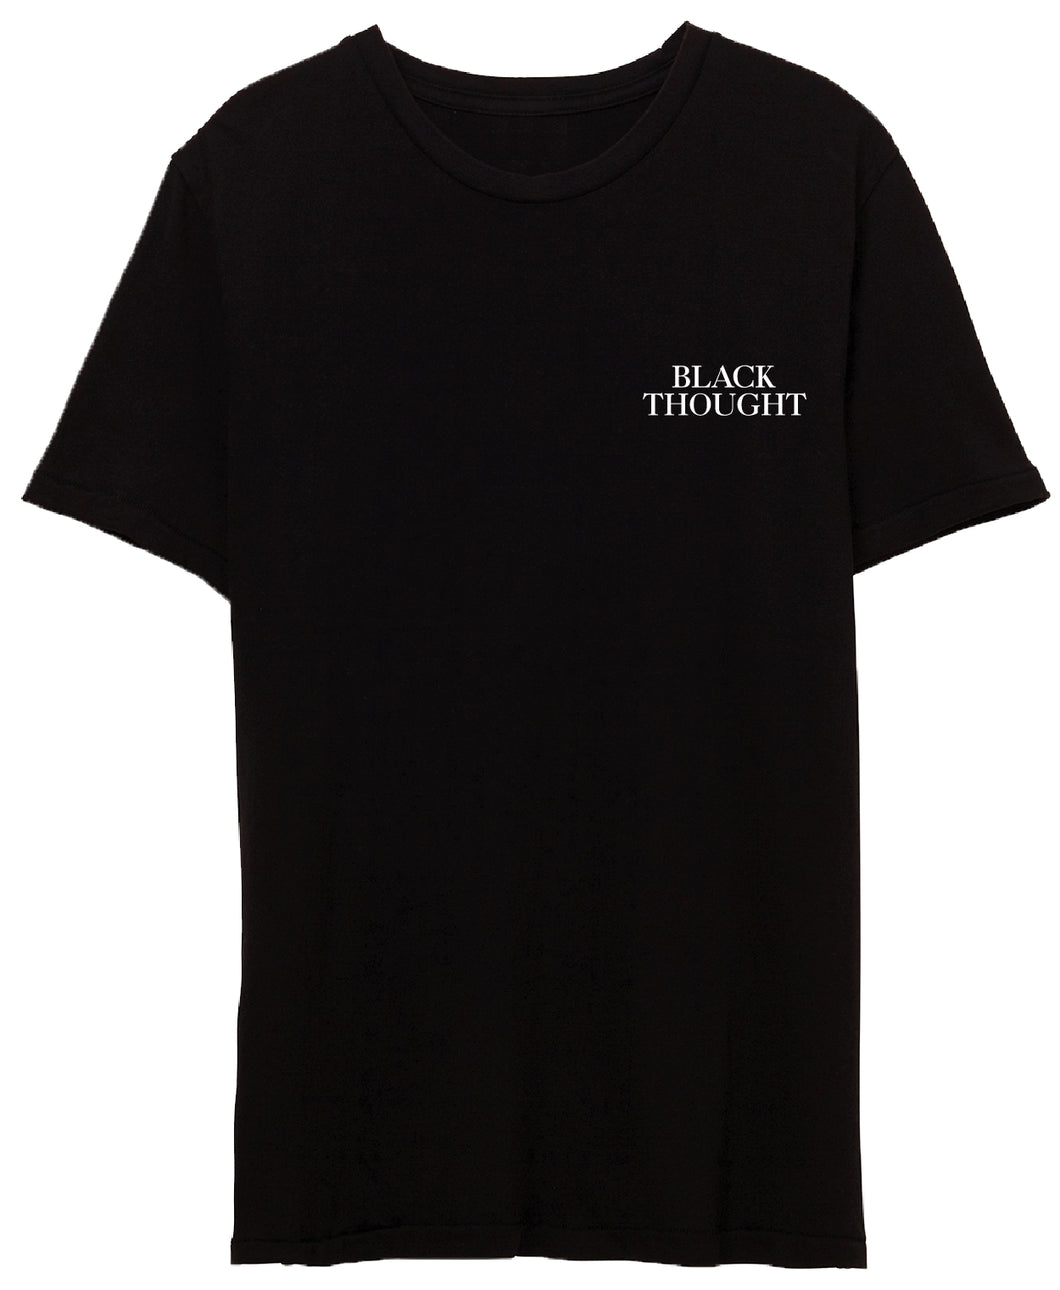 The Black Thought Tee 2.0